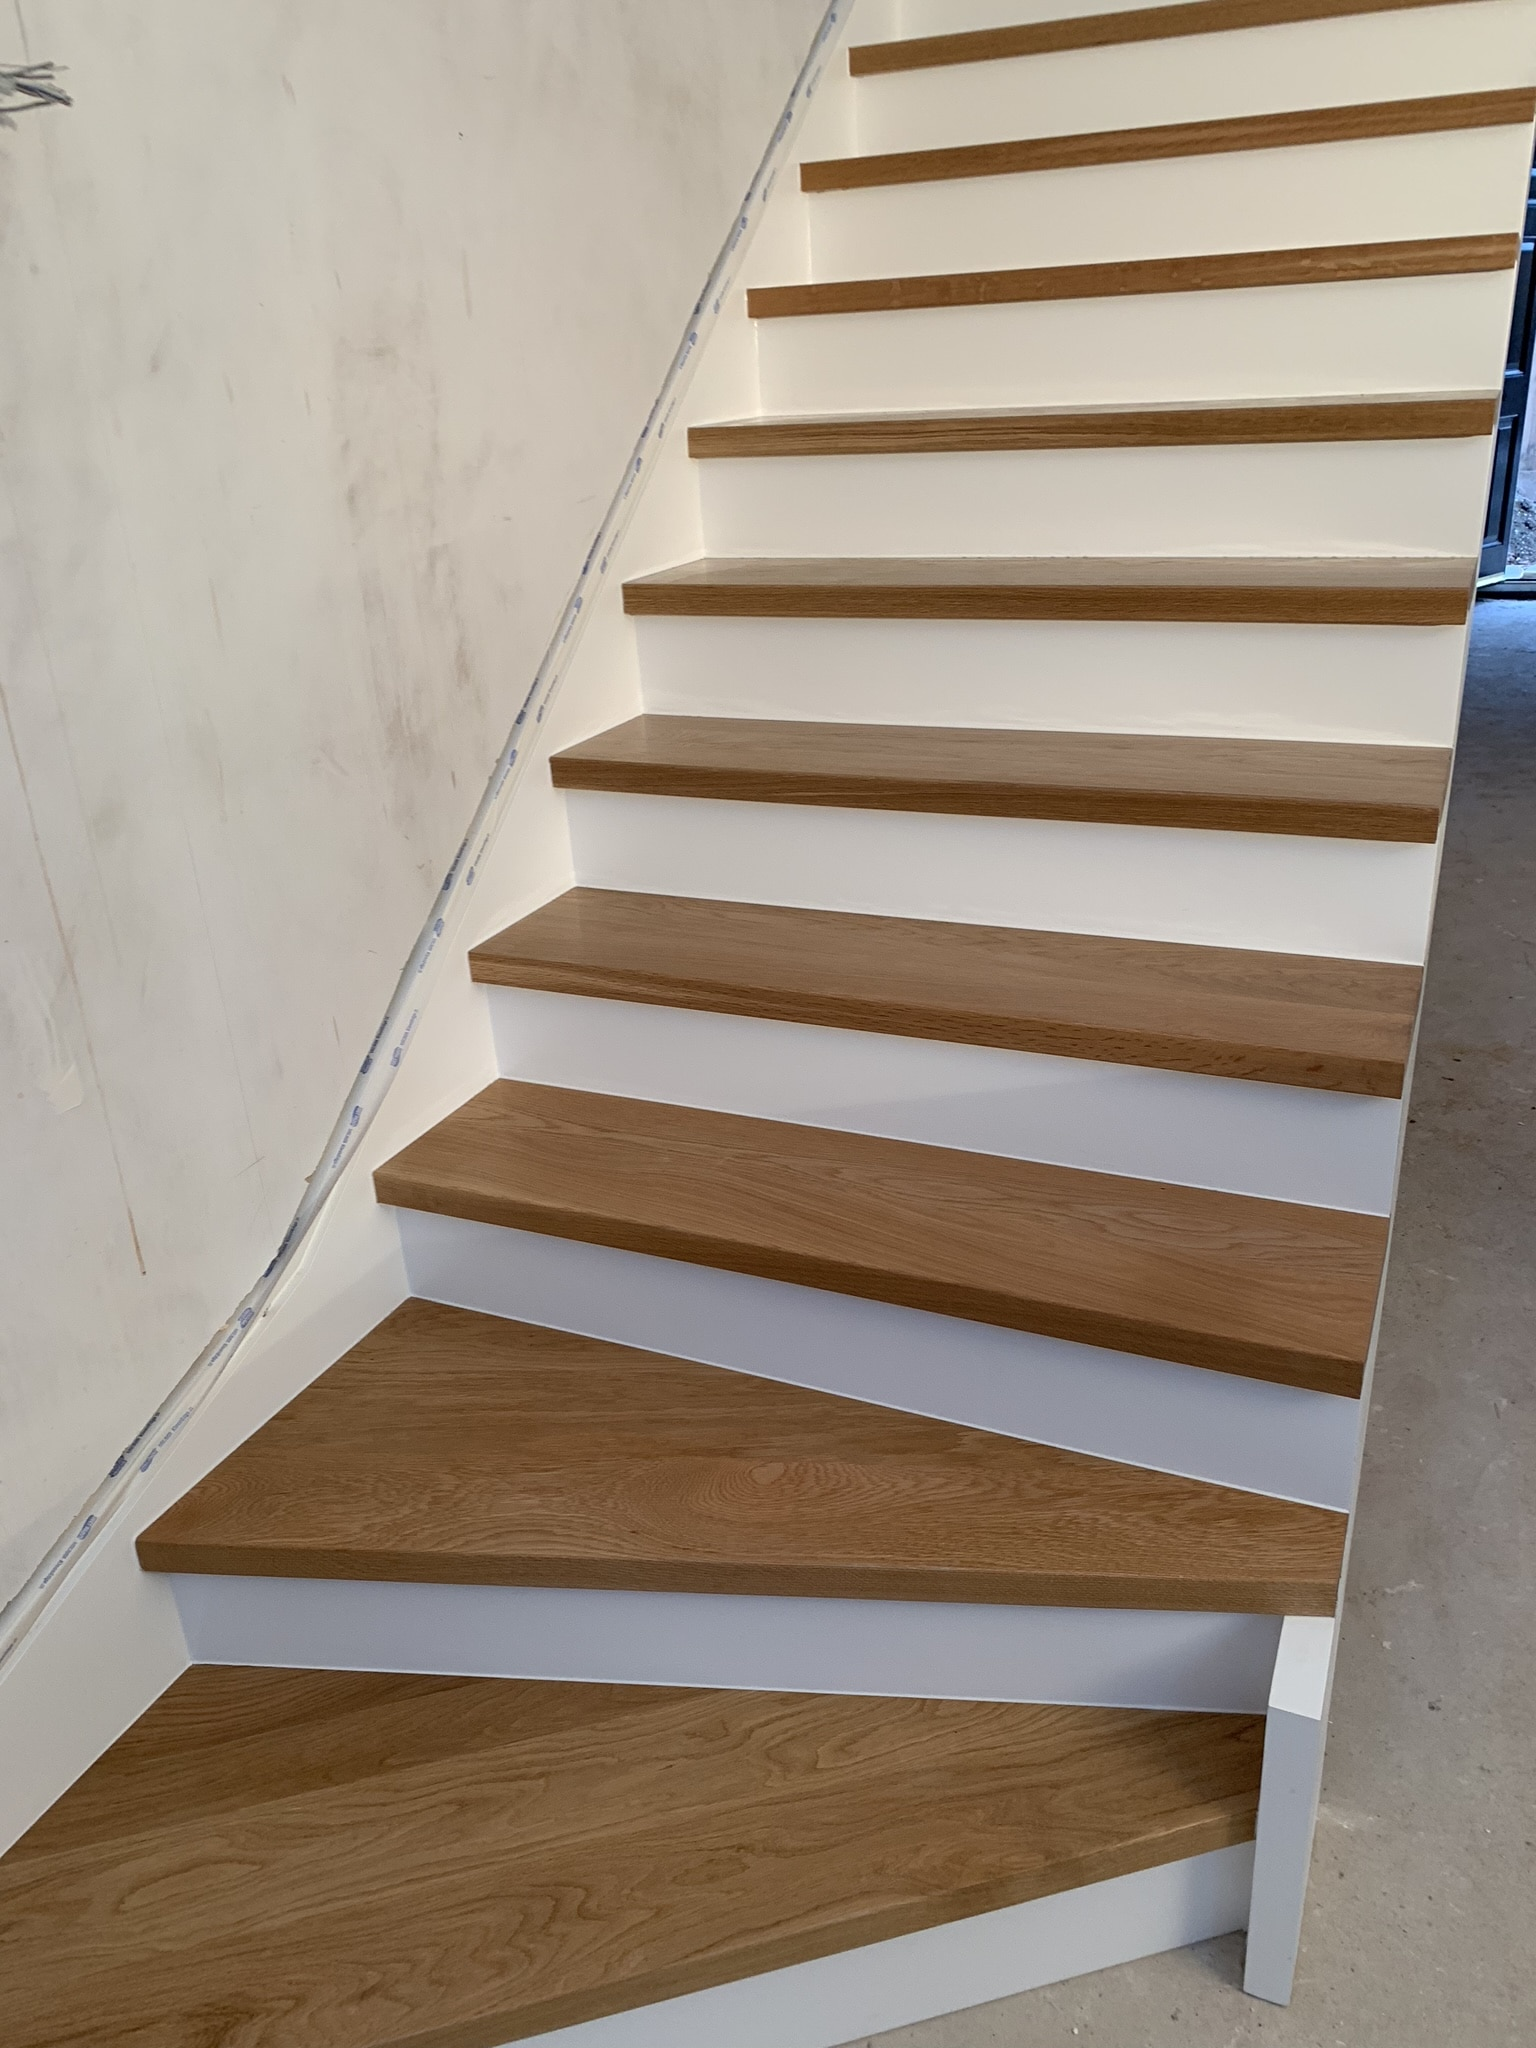 Staircase in construction.